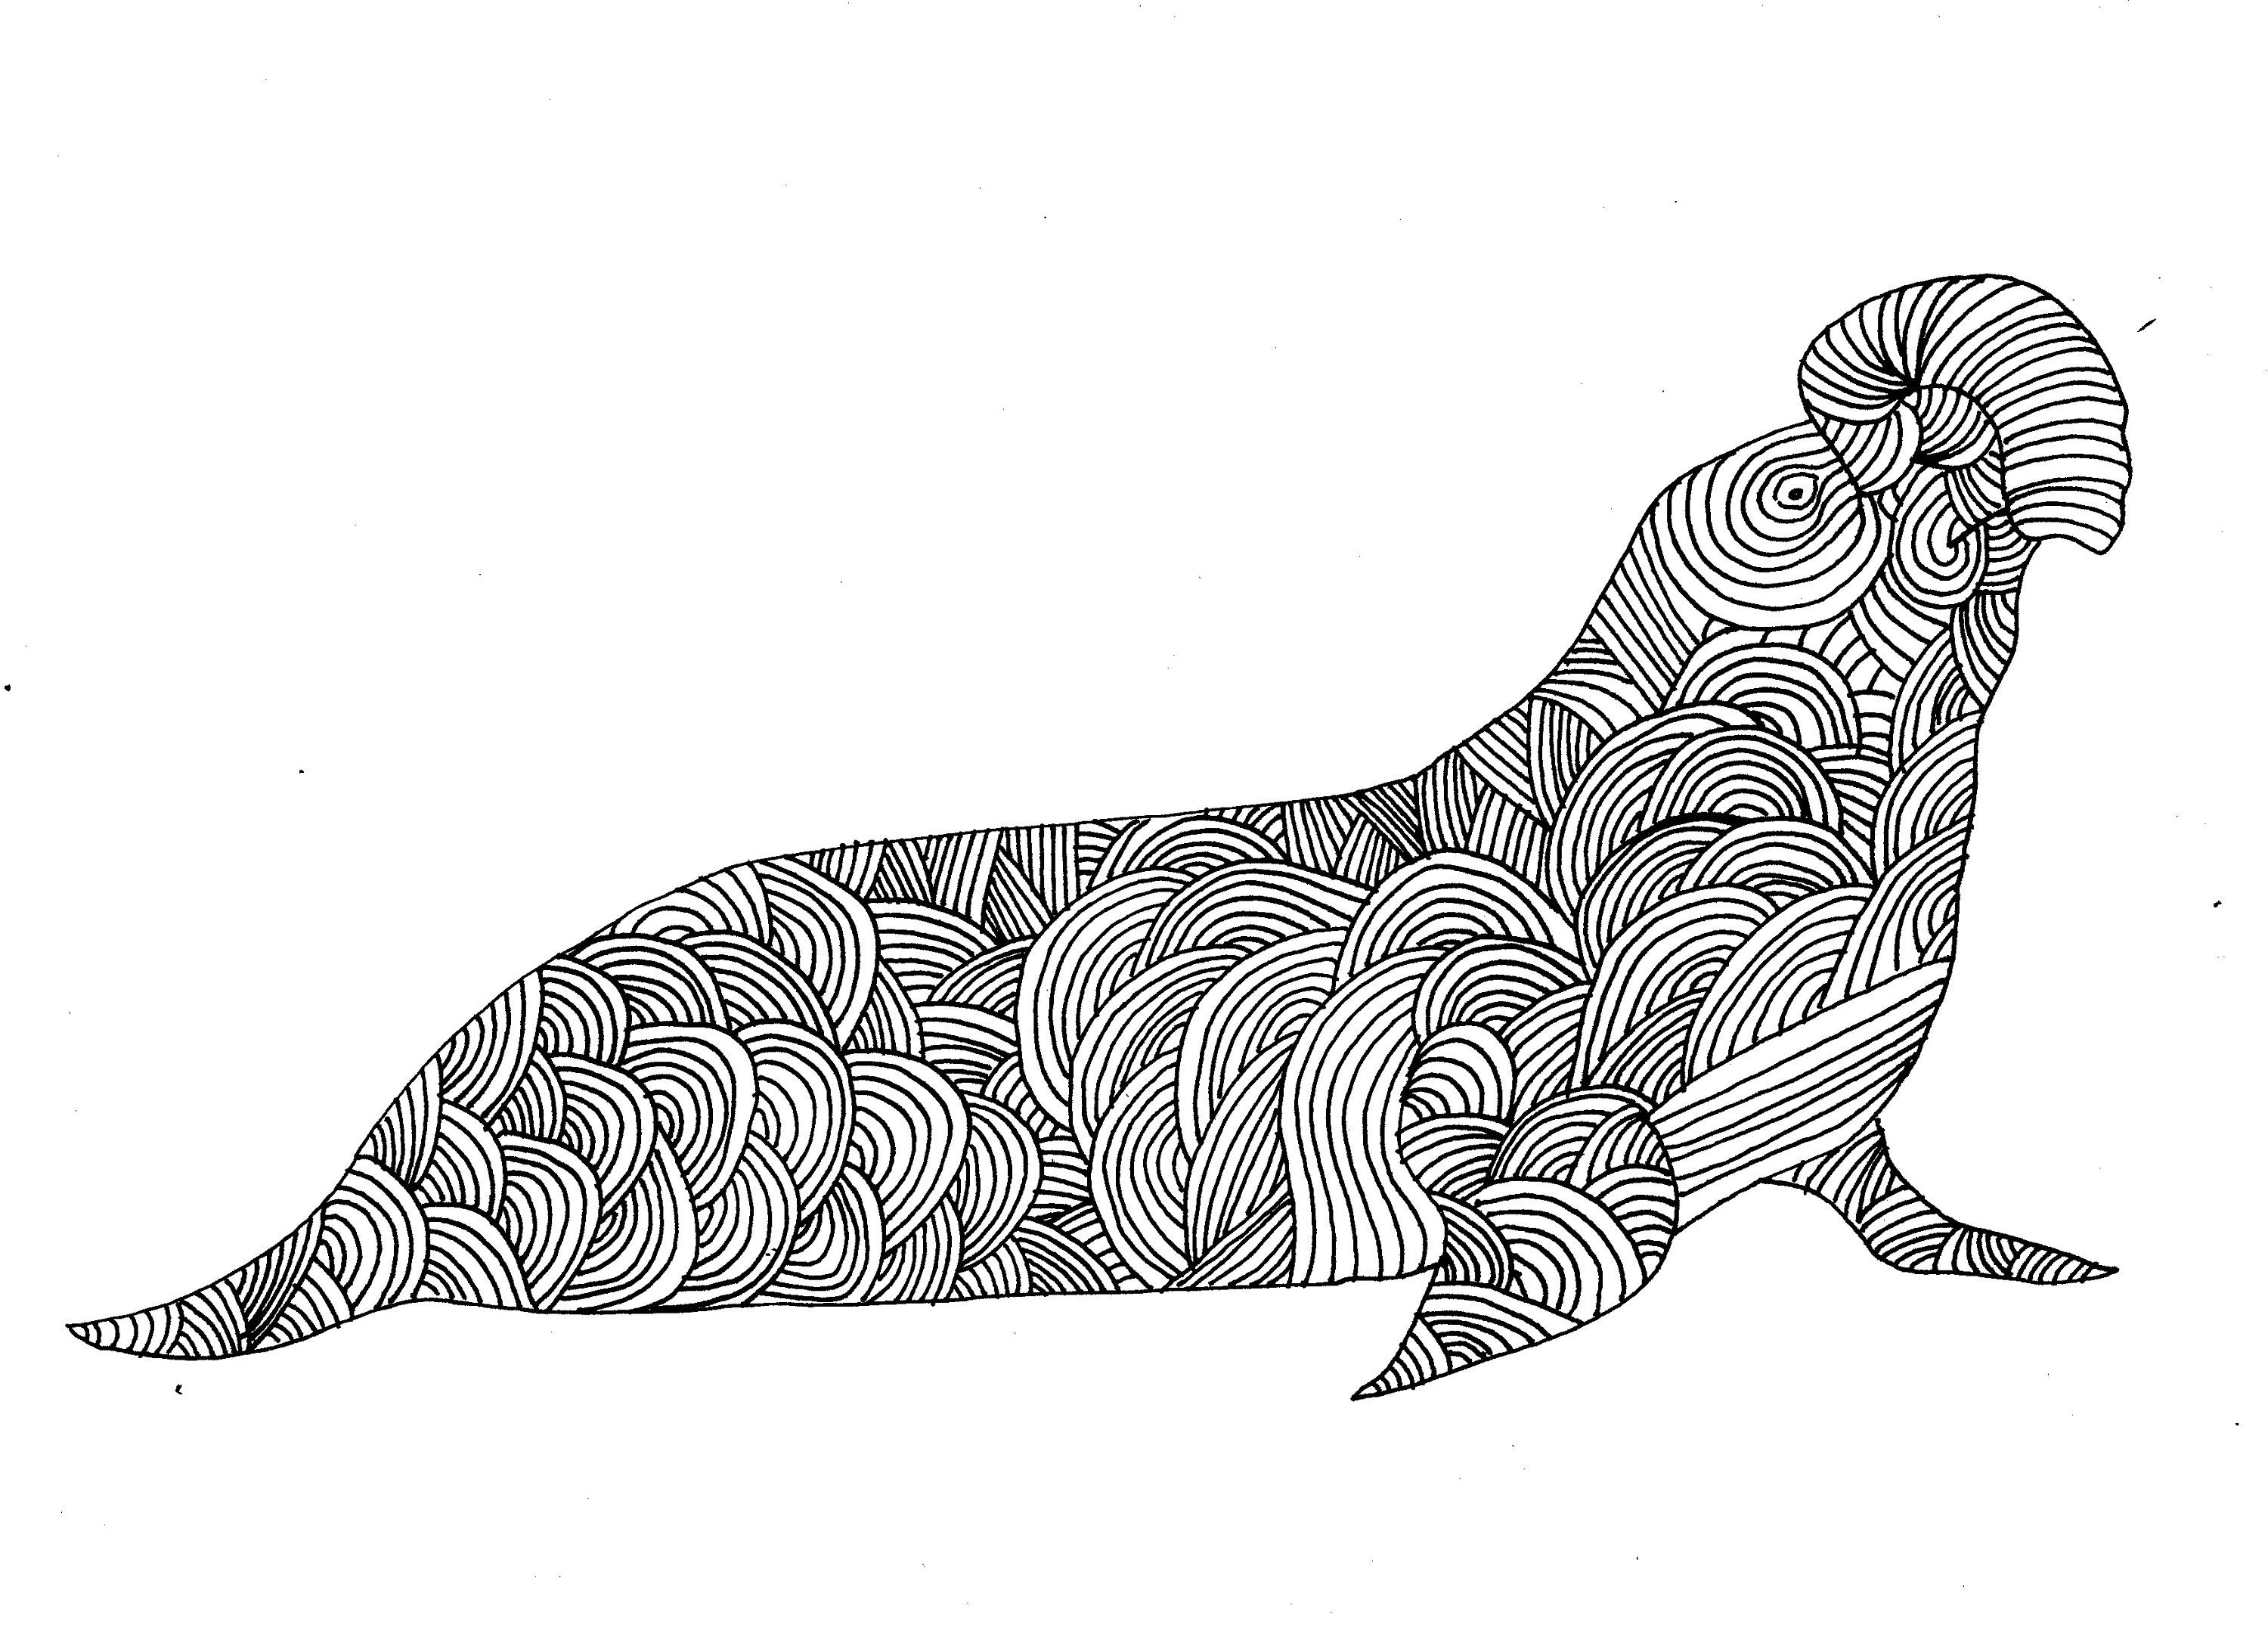 exotic animal coloring pages exotic coloring download exotic coloring for free 2019 animal coloring exotic pages